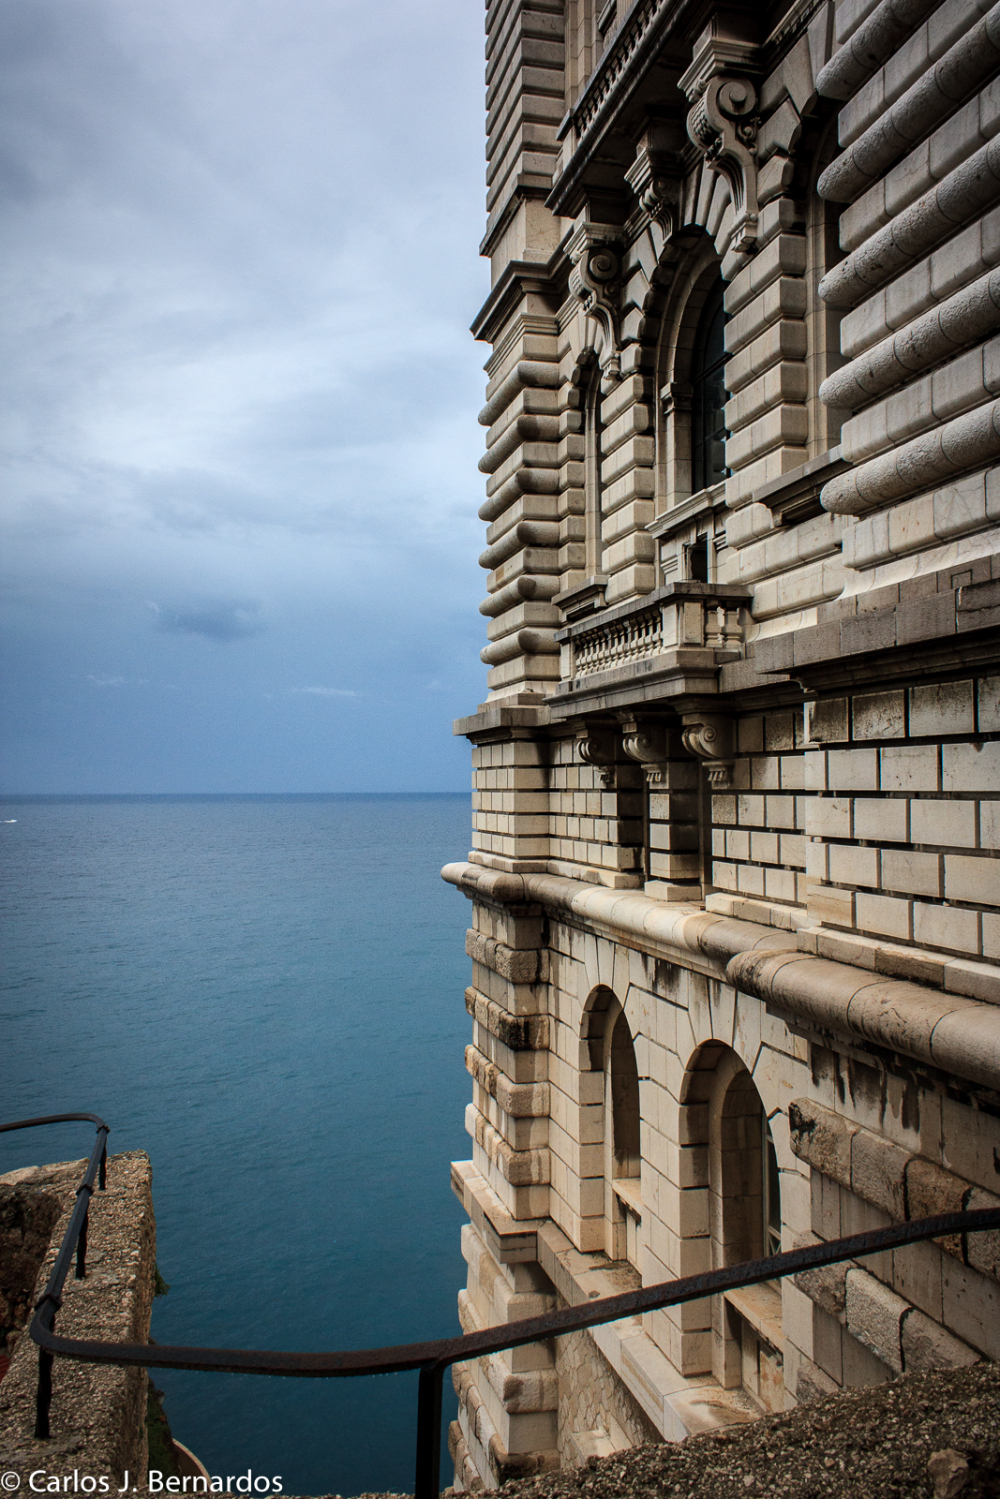 Sea view from Montecarlo